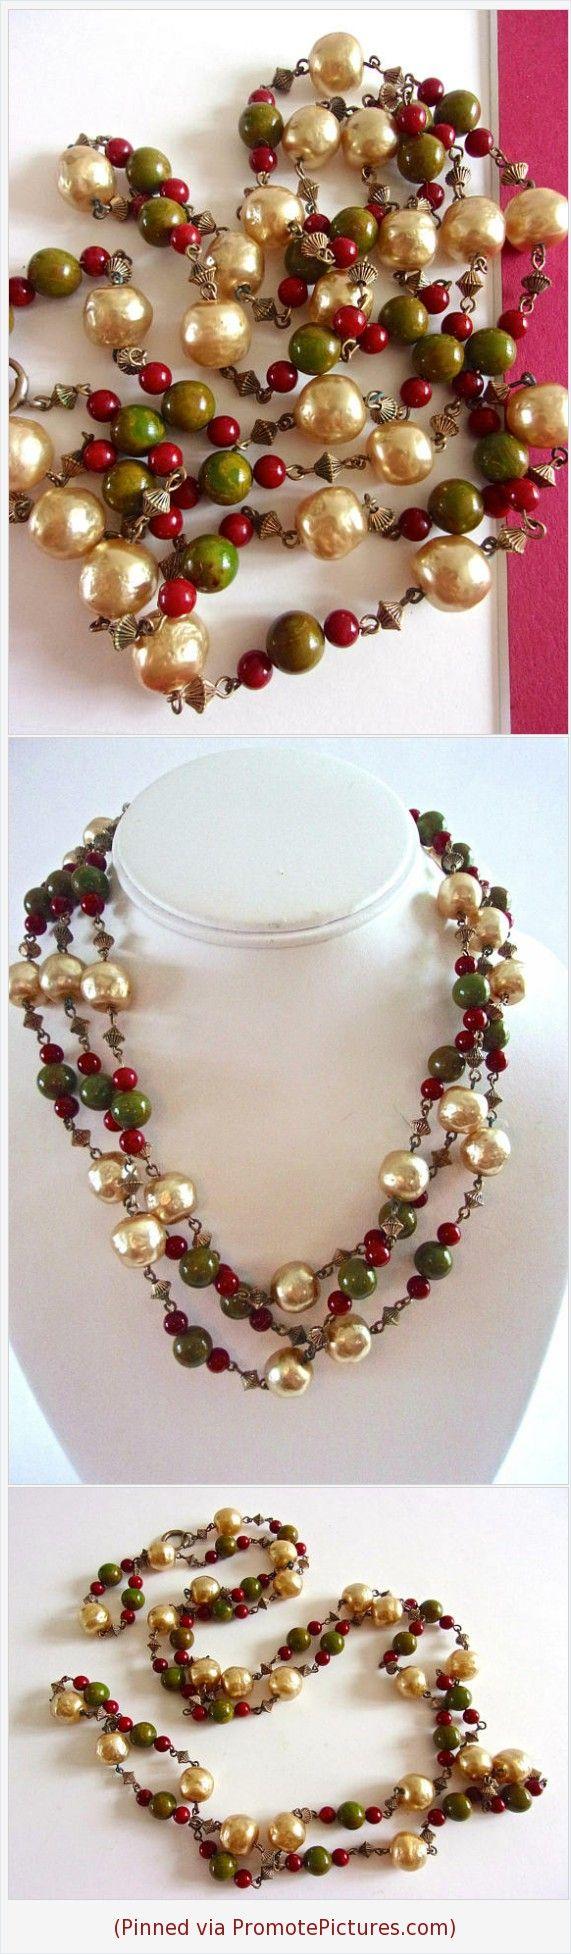 Red Green Bakelite & Faux Baroque Pearl Necklace, Brass Spacers, 56 inch Long, Vintage #necklace #bakelite #glasspearls #red #green #brass #long #vintage #baroquepearls #beads #flapper https://www.etsy.com/RenaissanceFair/listing/582596174/red-green-bakelite-faux-baroque-pearl?ref=listings_manager_grid  (Pinned using https://PromotePictures.com)